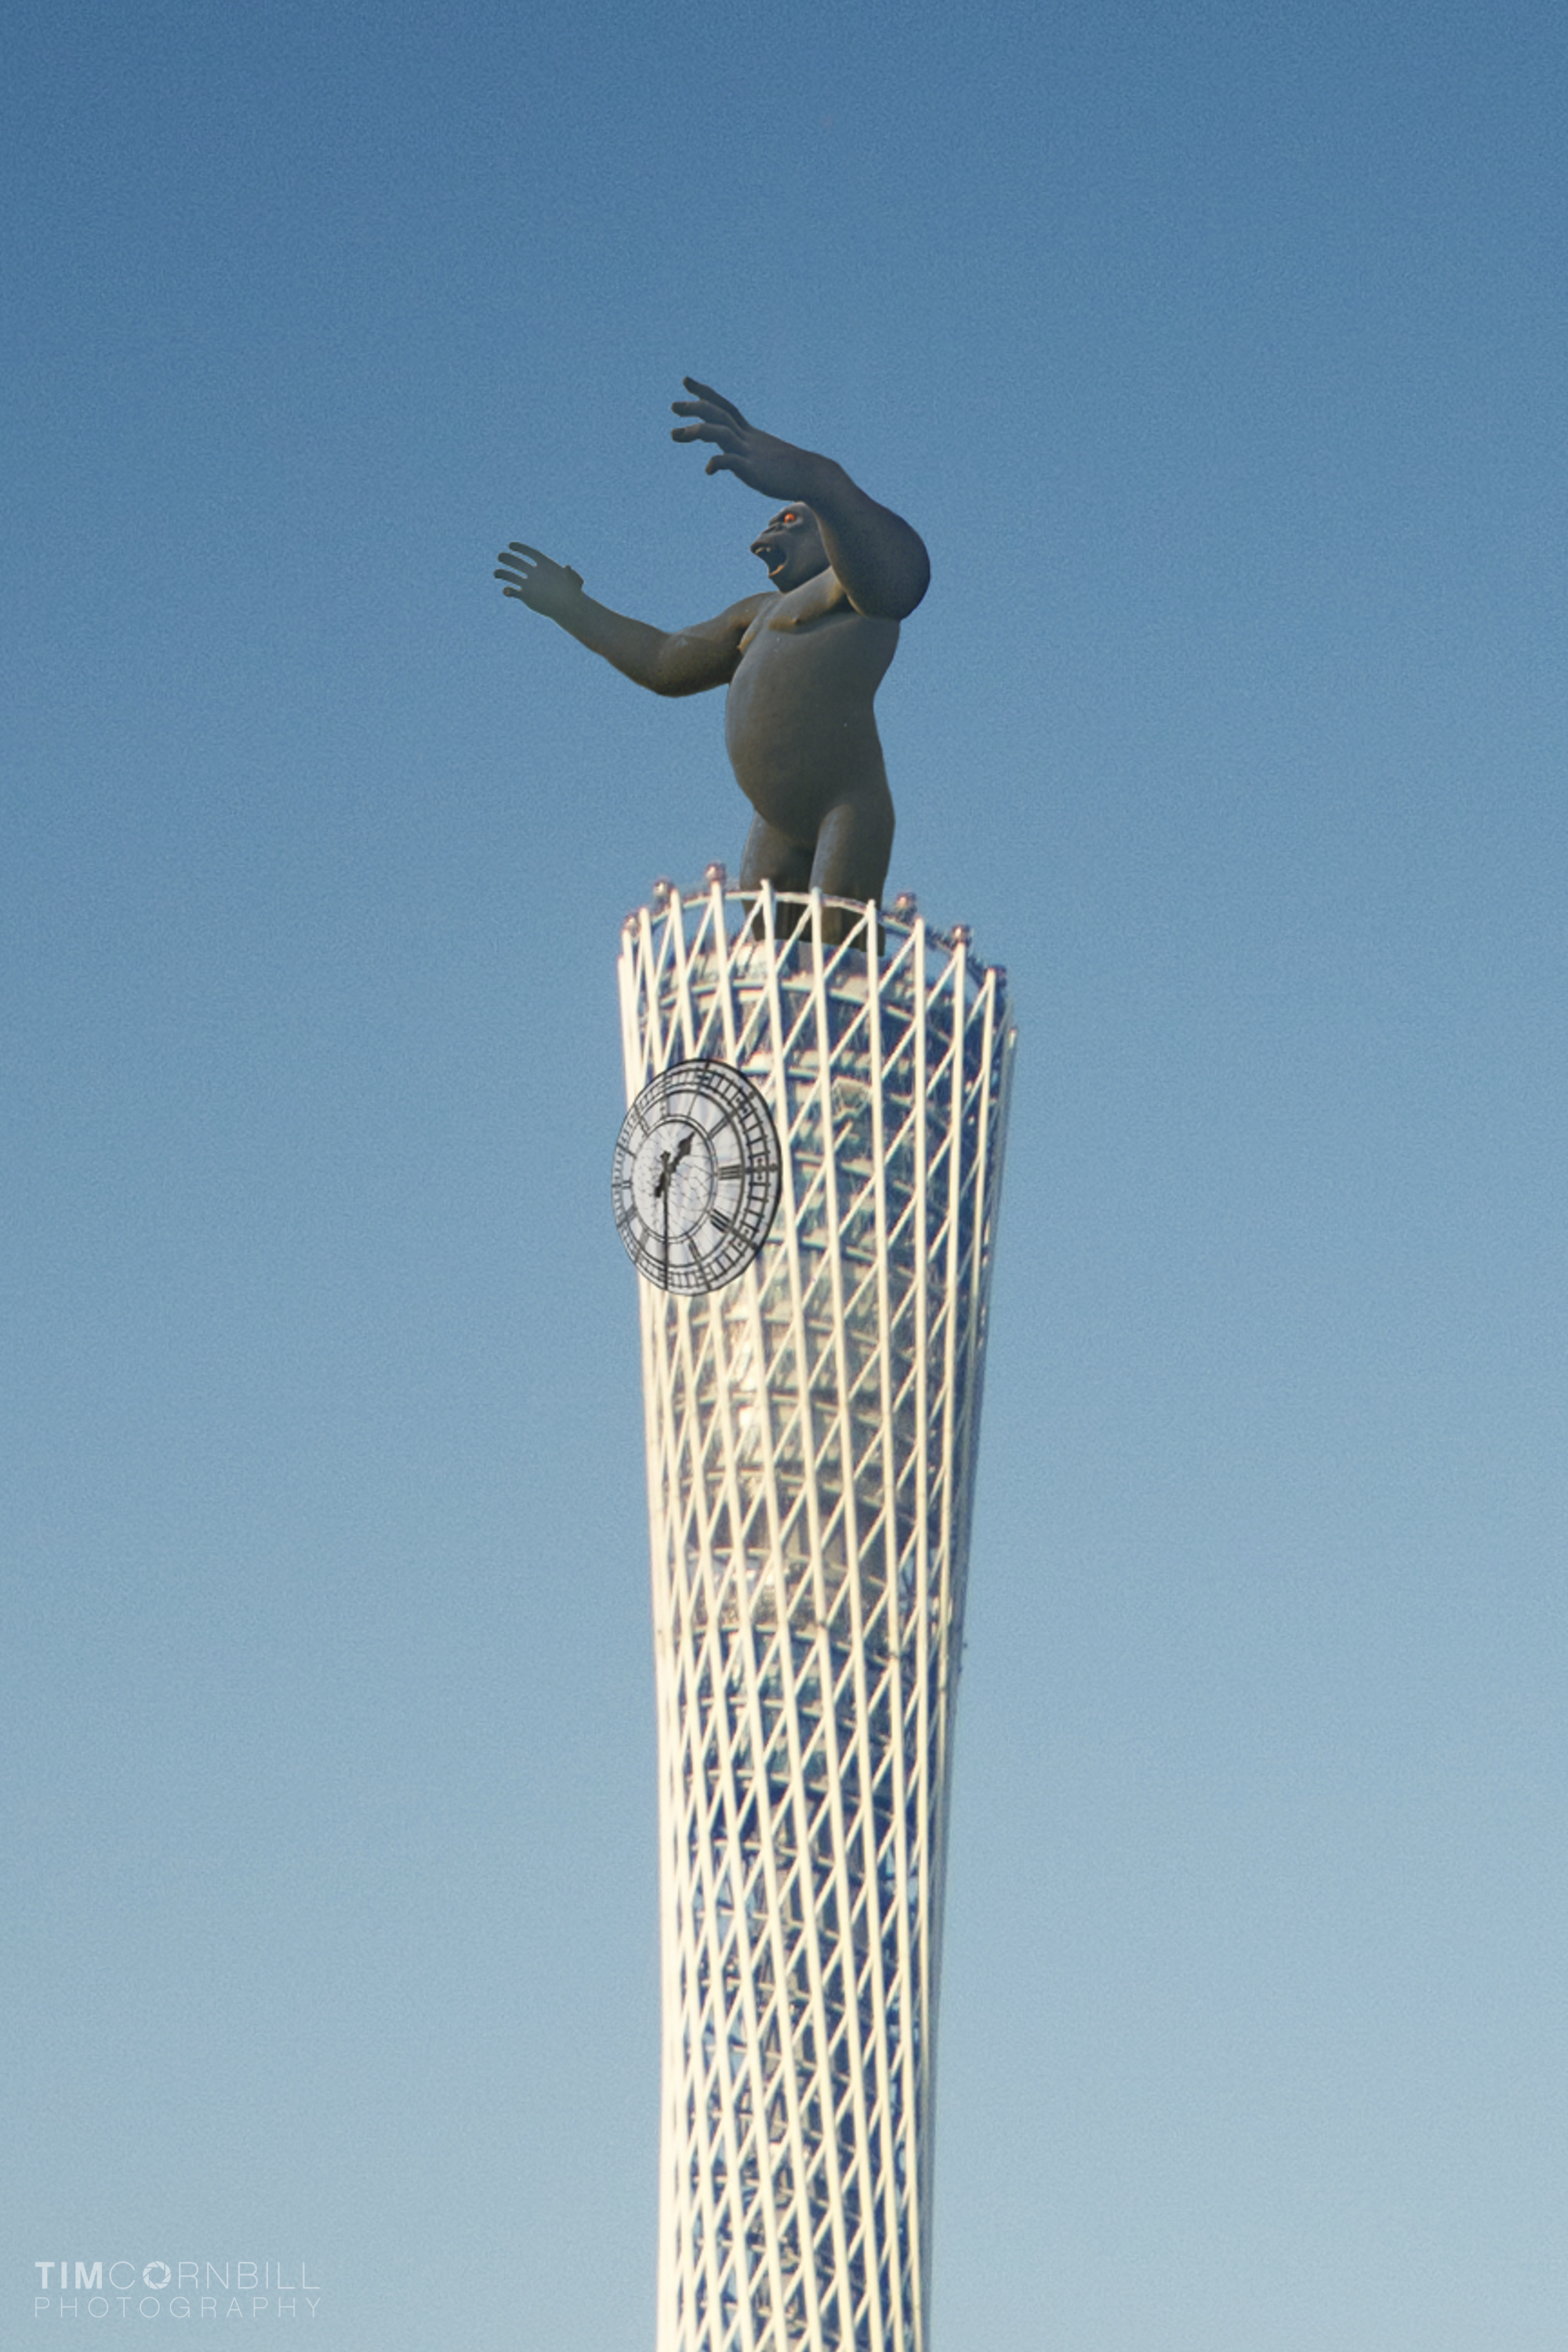 King Kong will rotate around the top of the clock tower